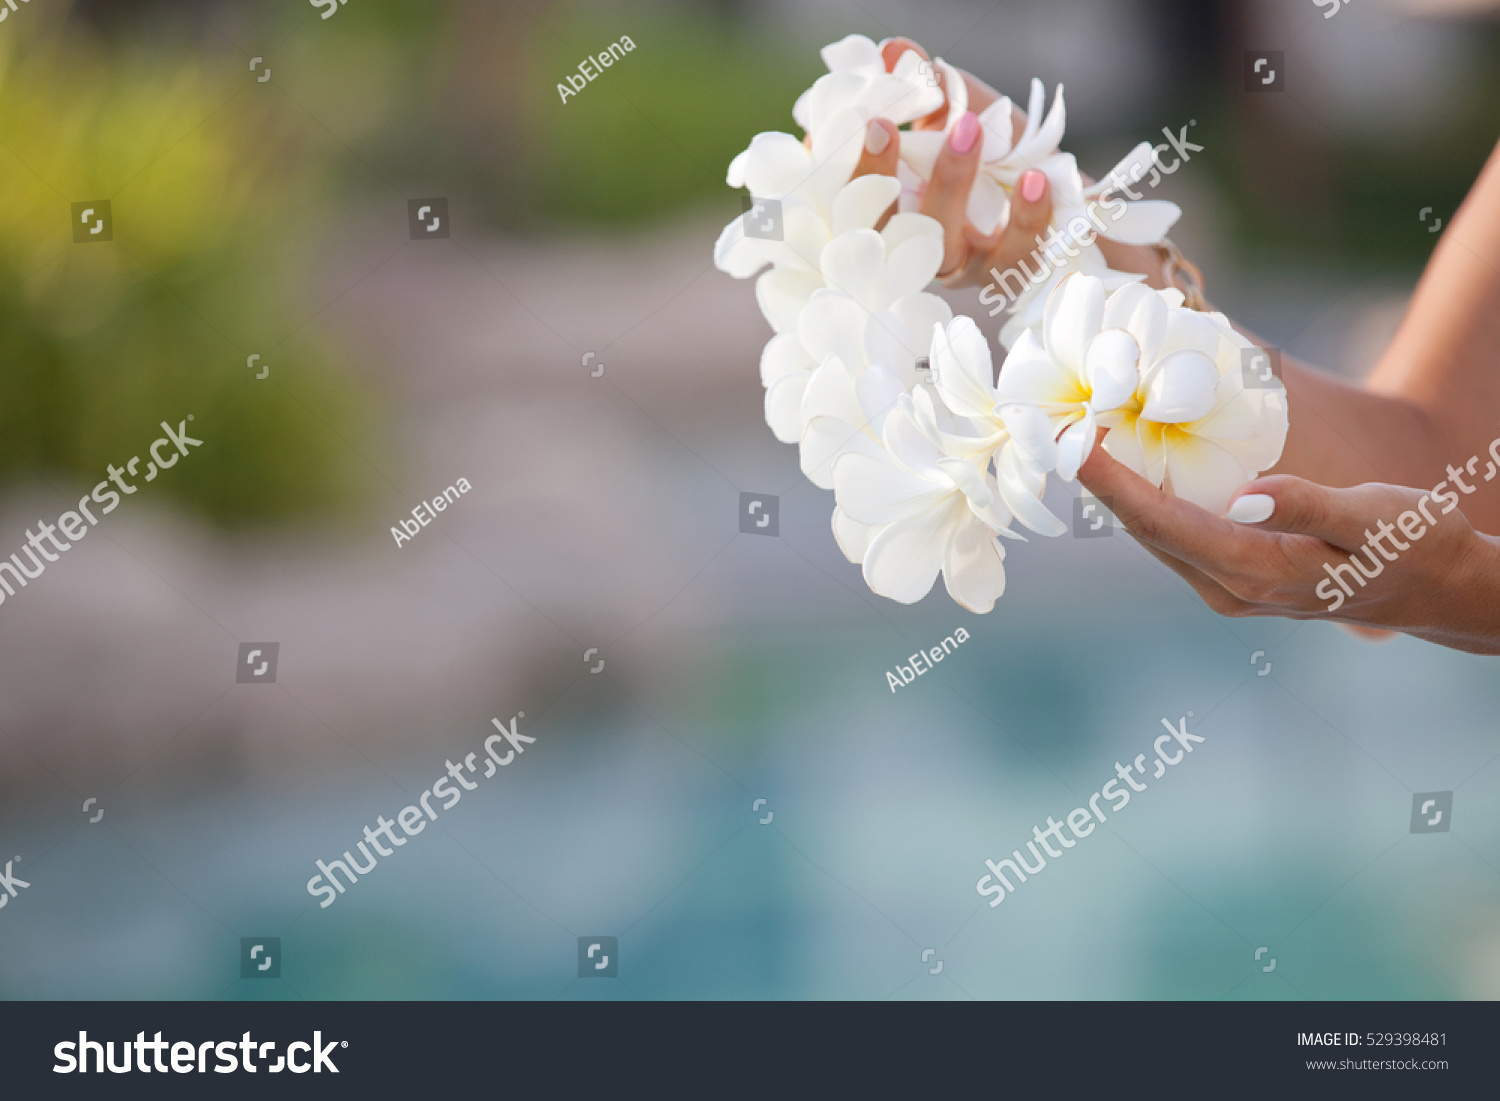 Woman hands holding flower lei garland of white plumeria welcoming id 529398481 izmirmasajfo